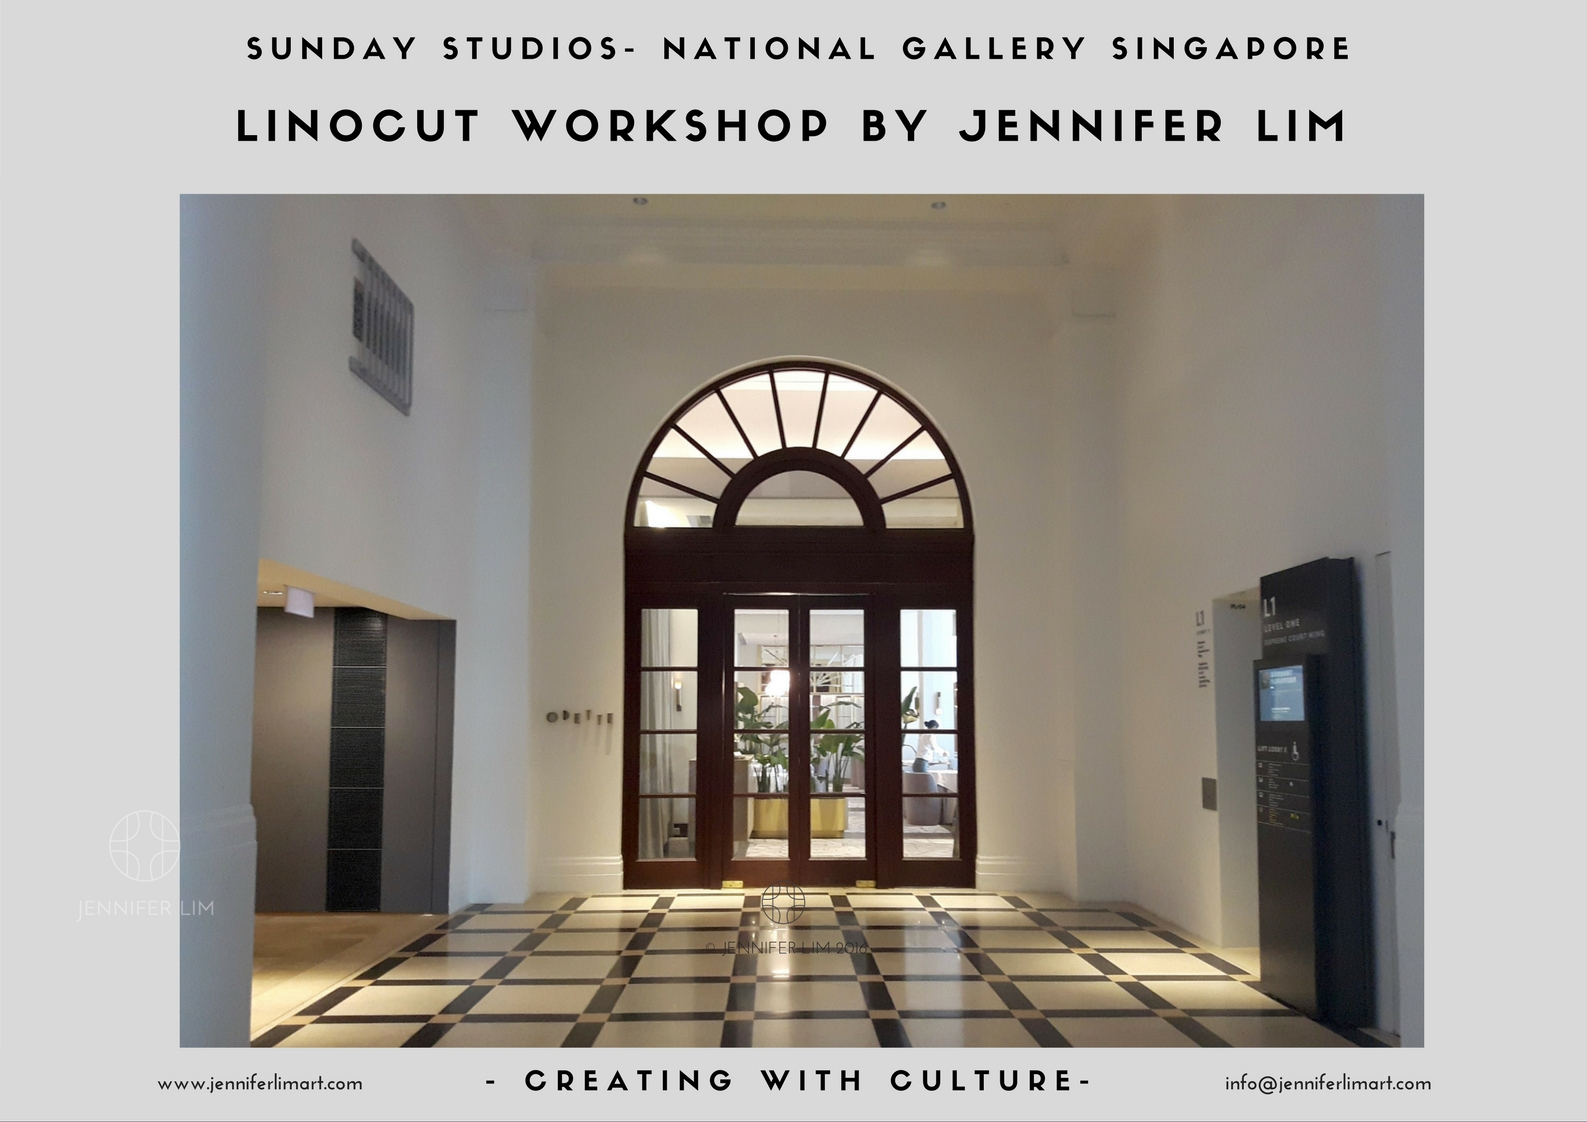 national_gallery_singapore_jennifer_lim_Arched_Door_02_A3.jpg